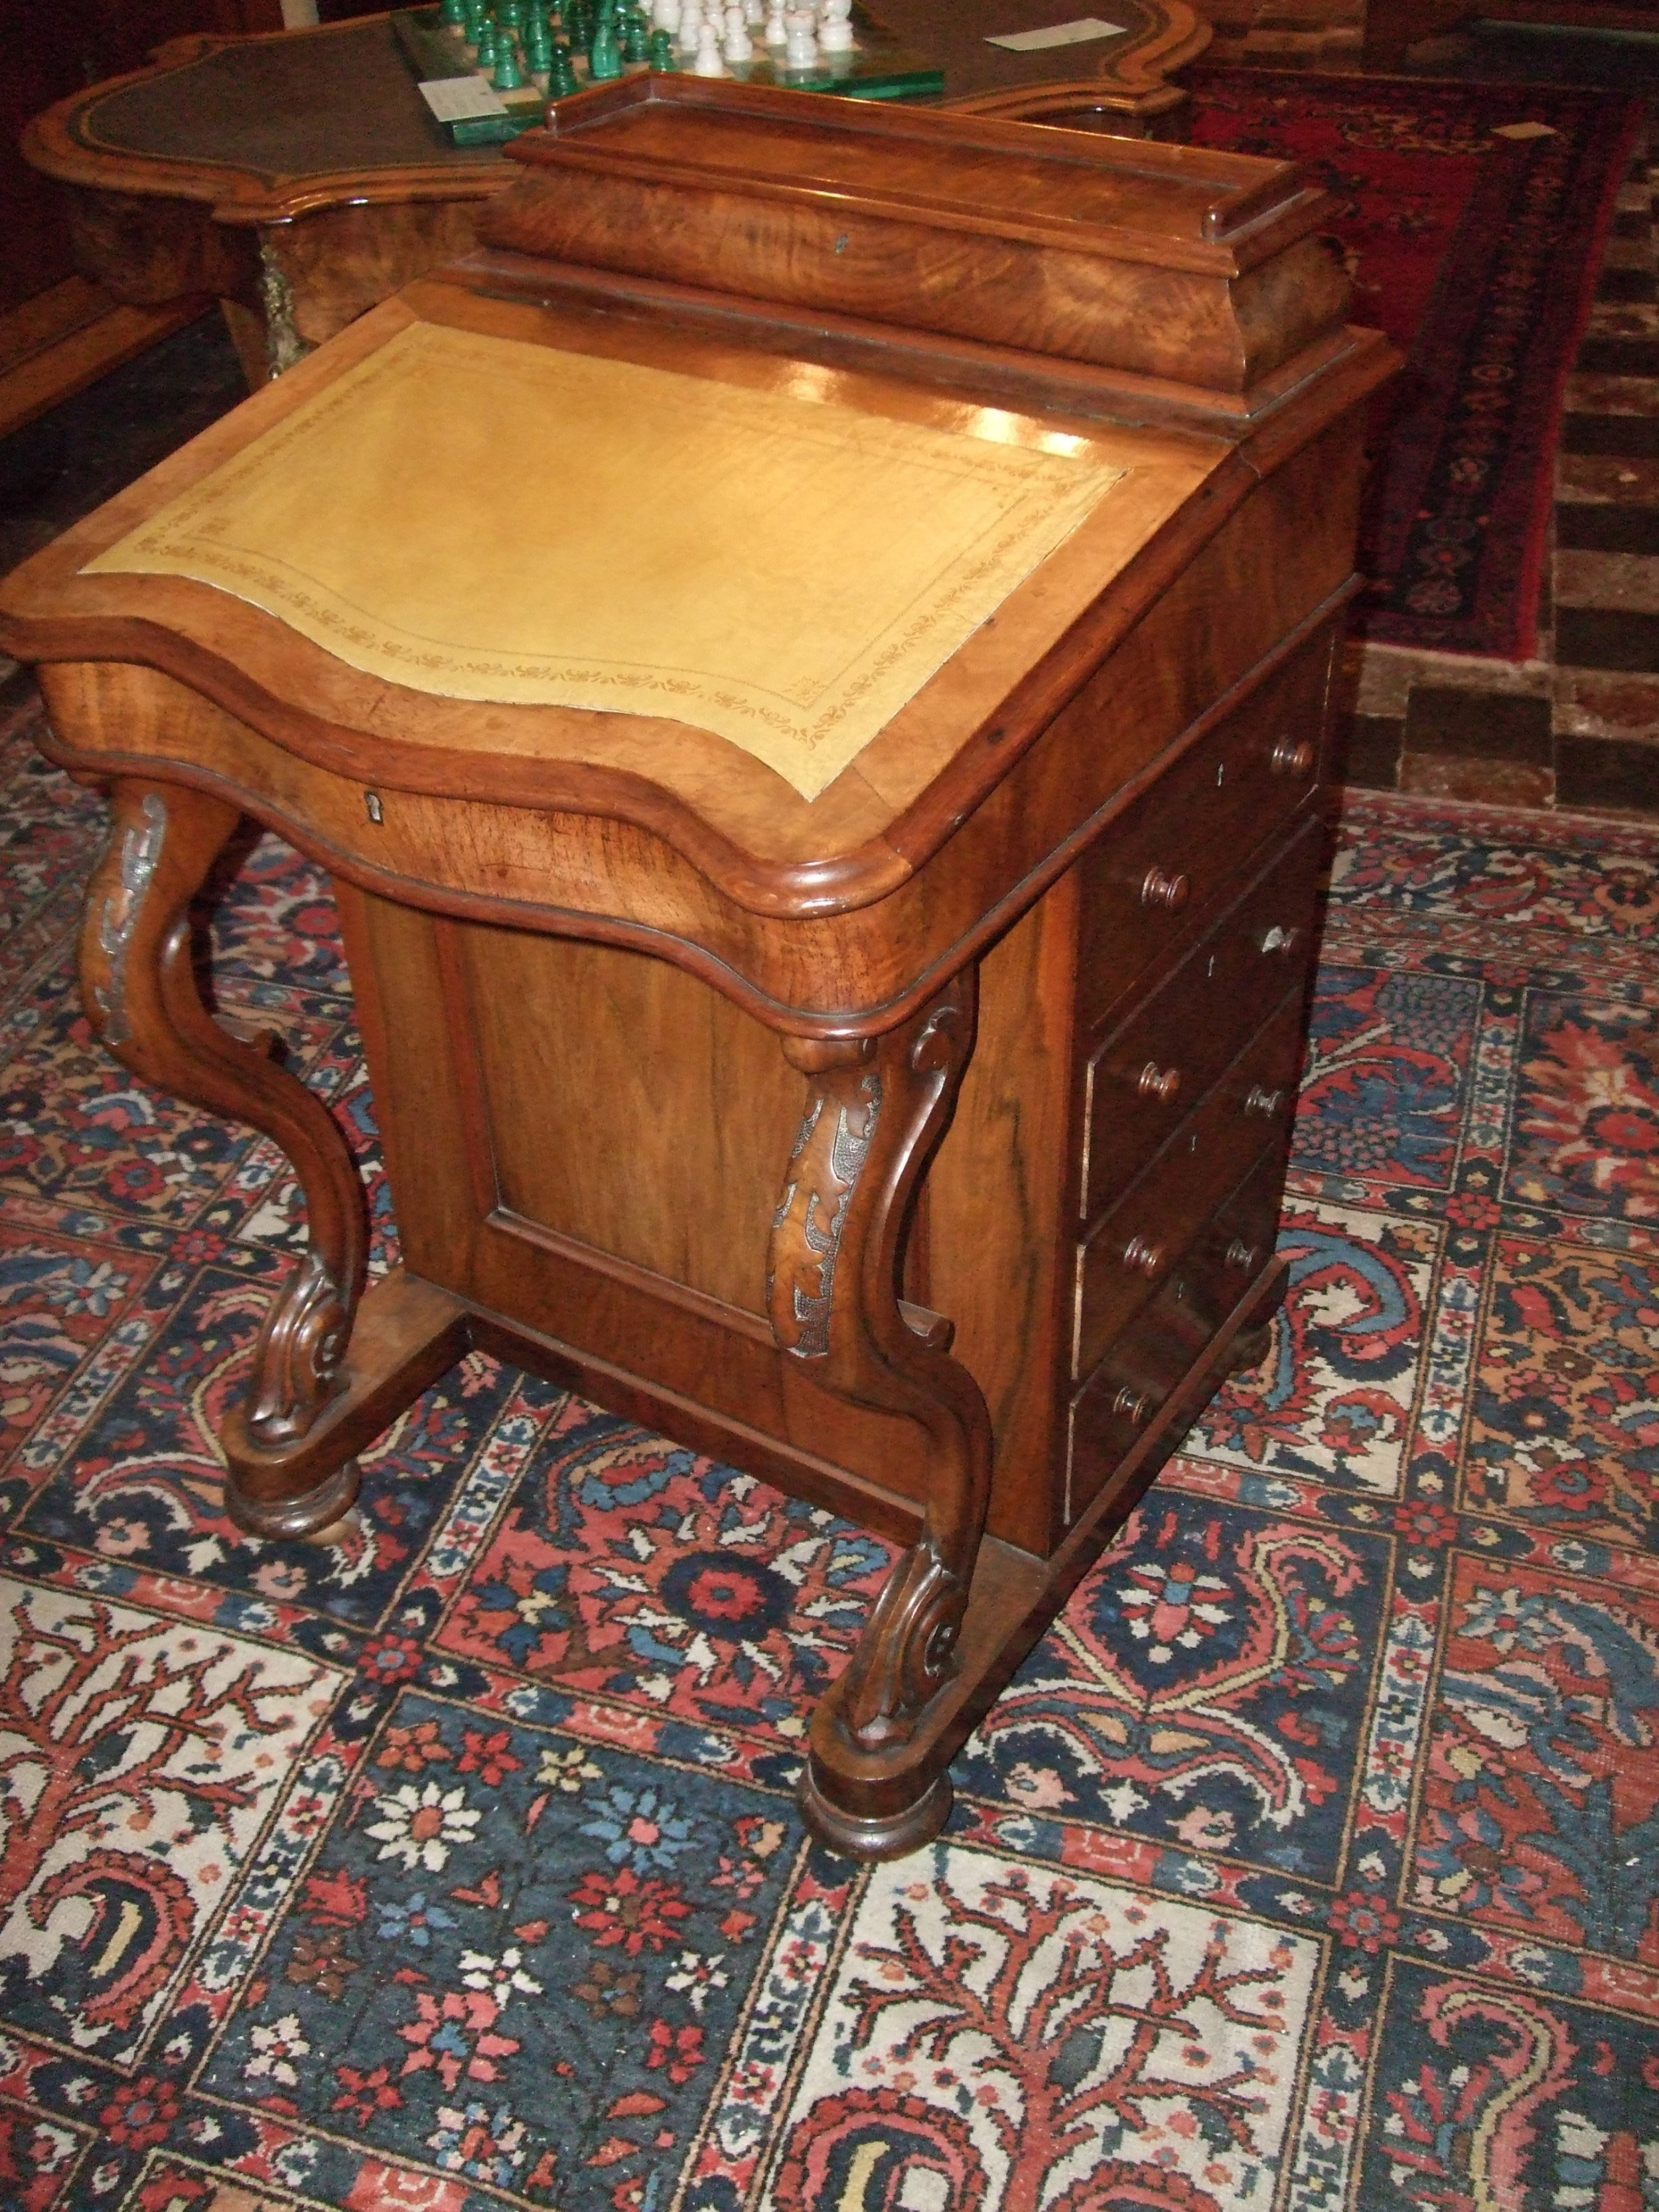 victorian walnut davenport desk with fitted interior penstationary compartment